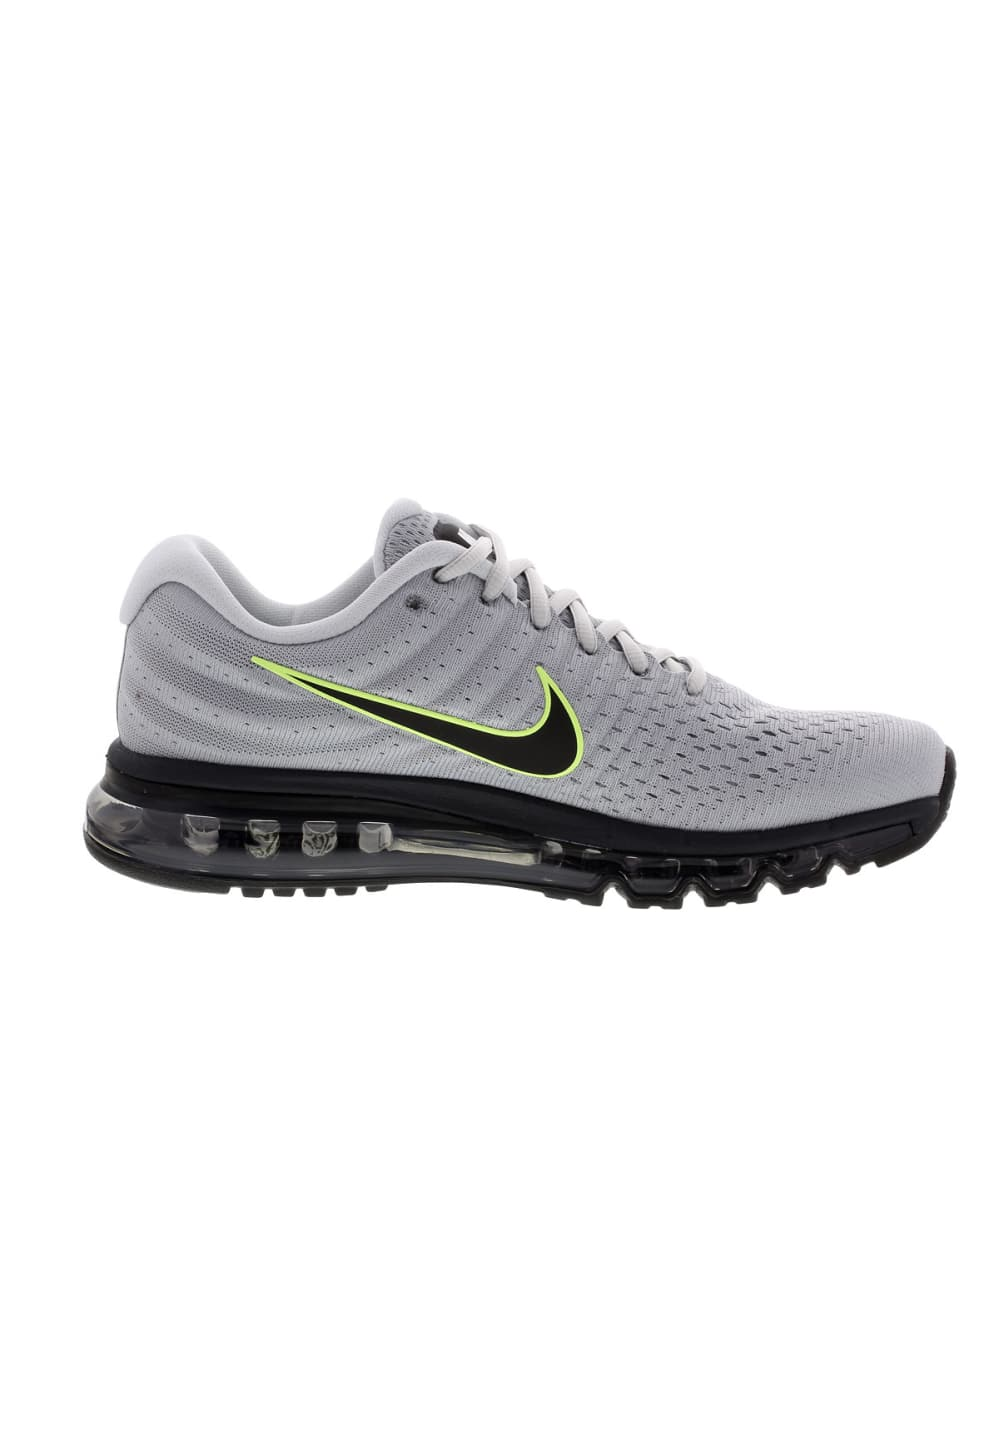 reputable site 6923b ab3dc Nike Air Max 2017 - Running shoes for Men - Grey